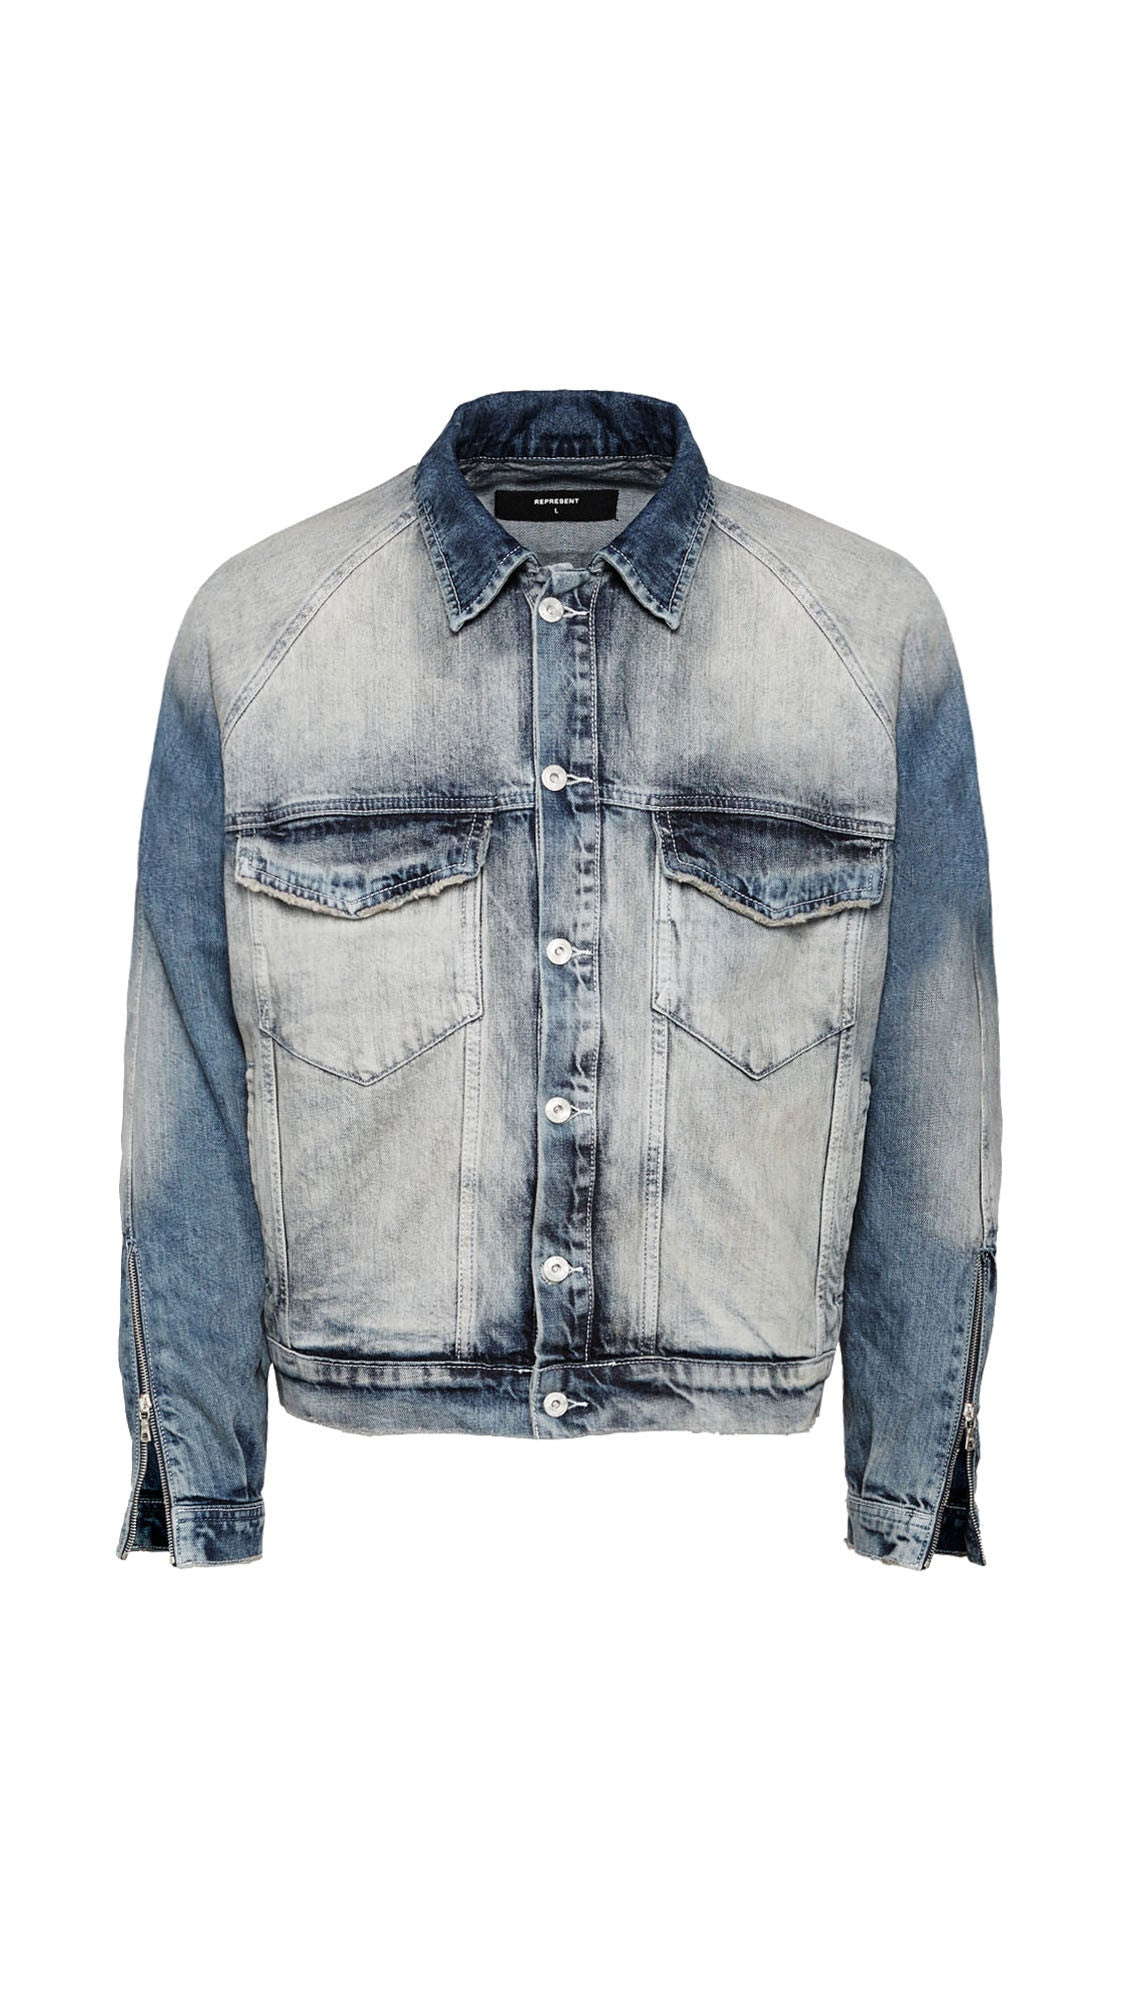 Basic Selvedge Denim Jacket - Random Blue